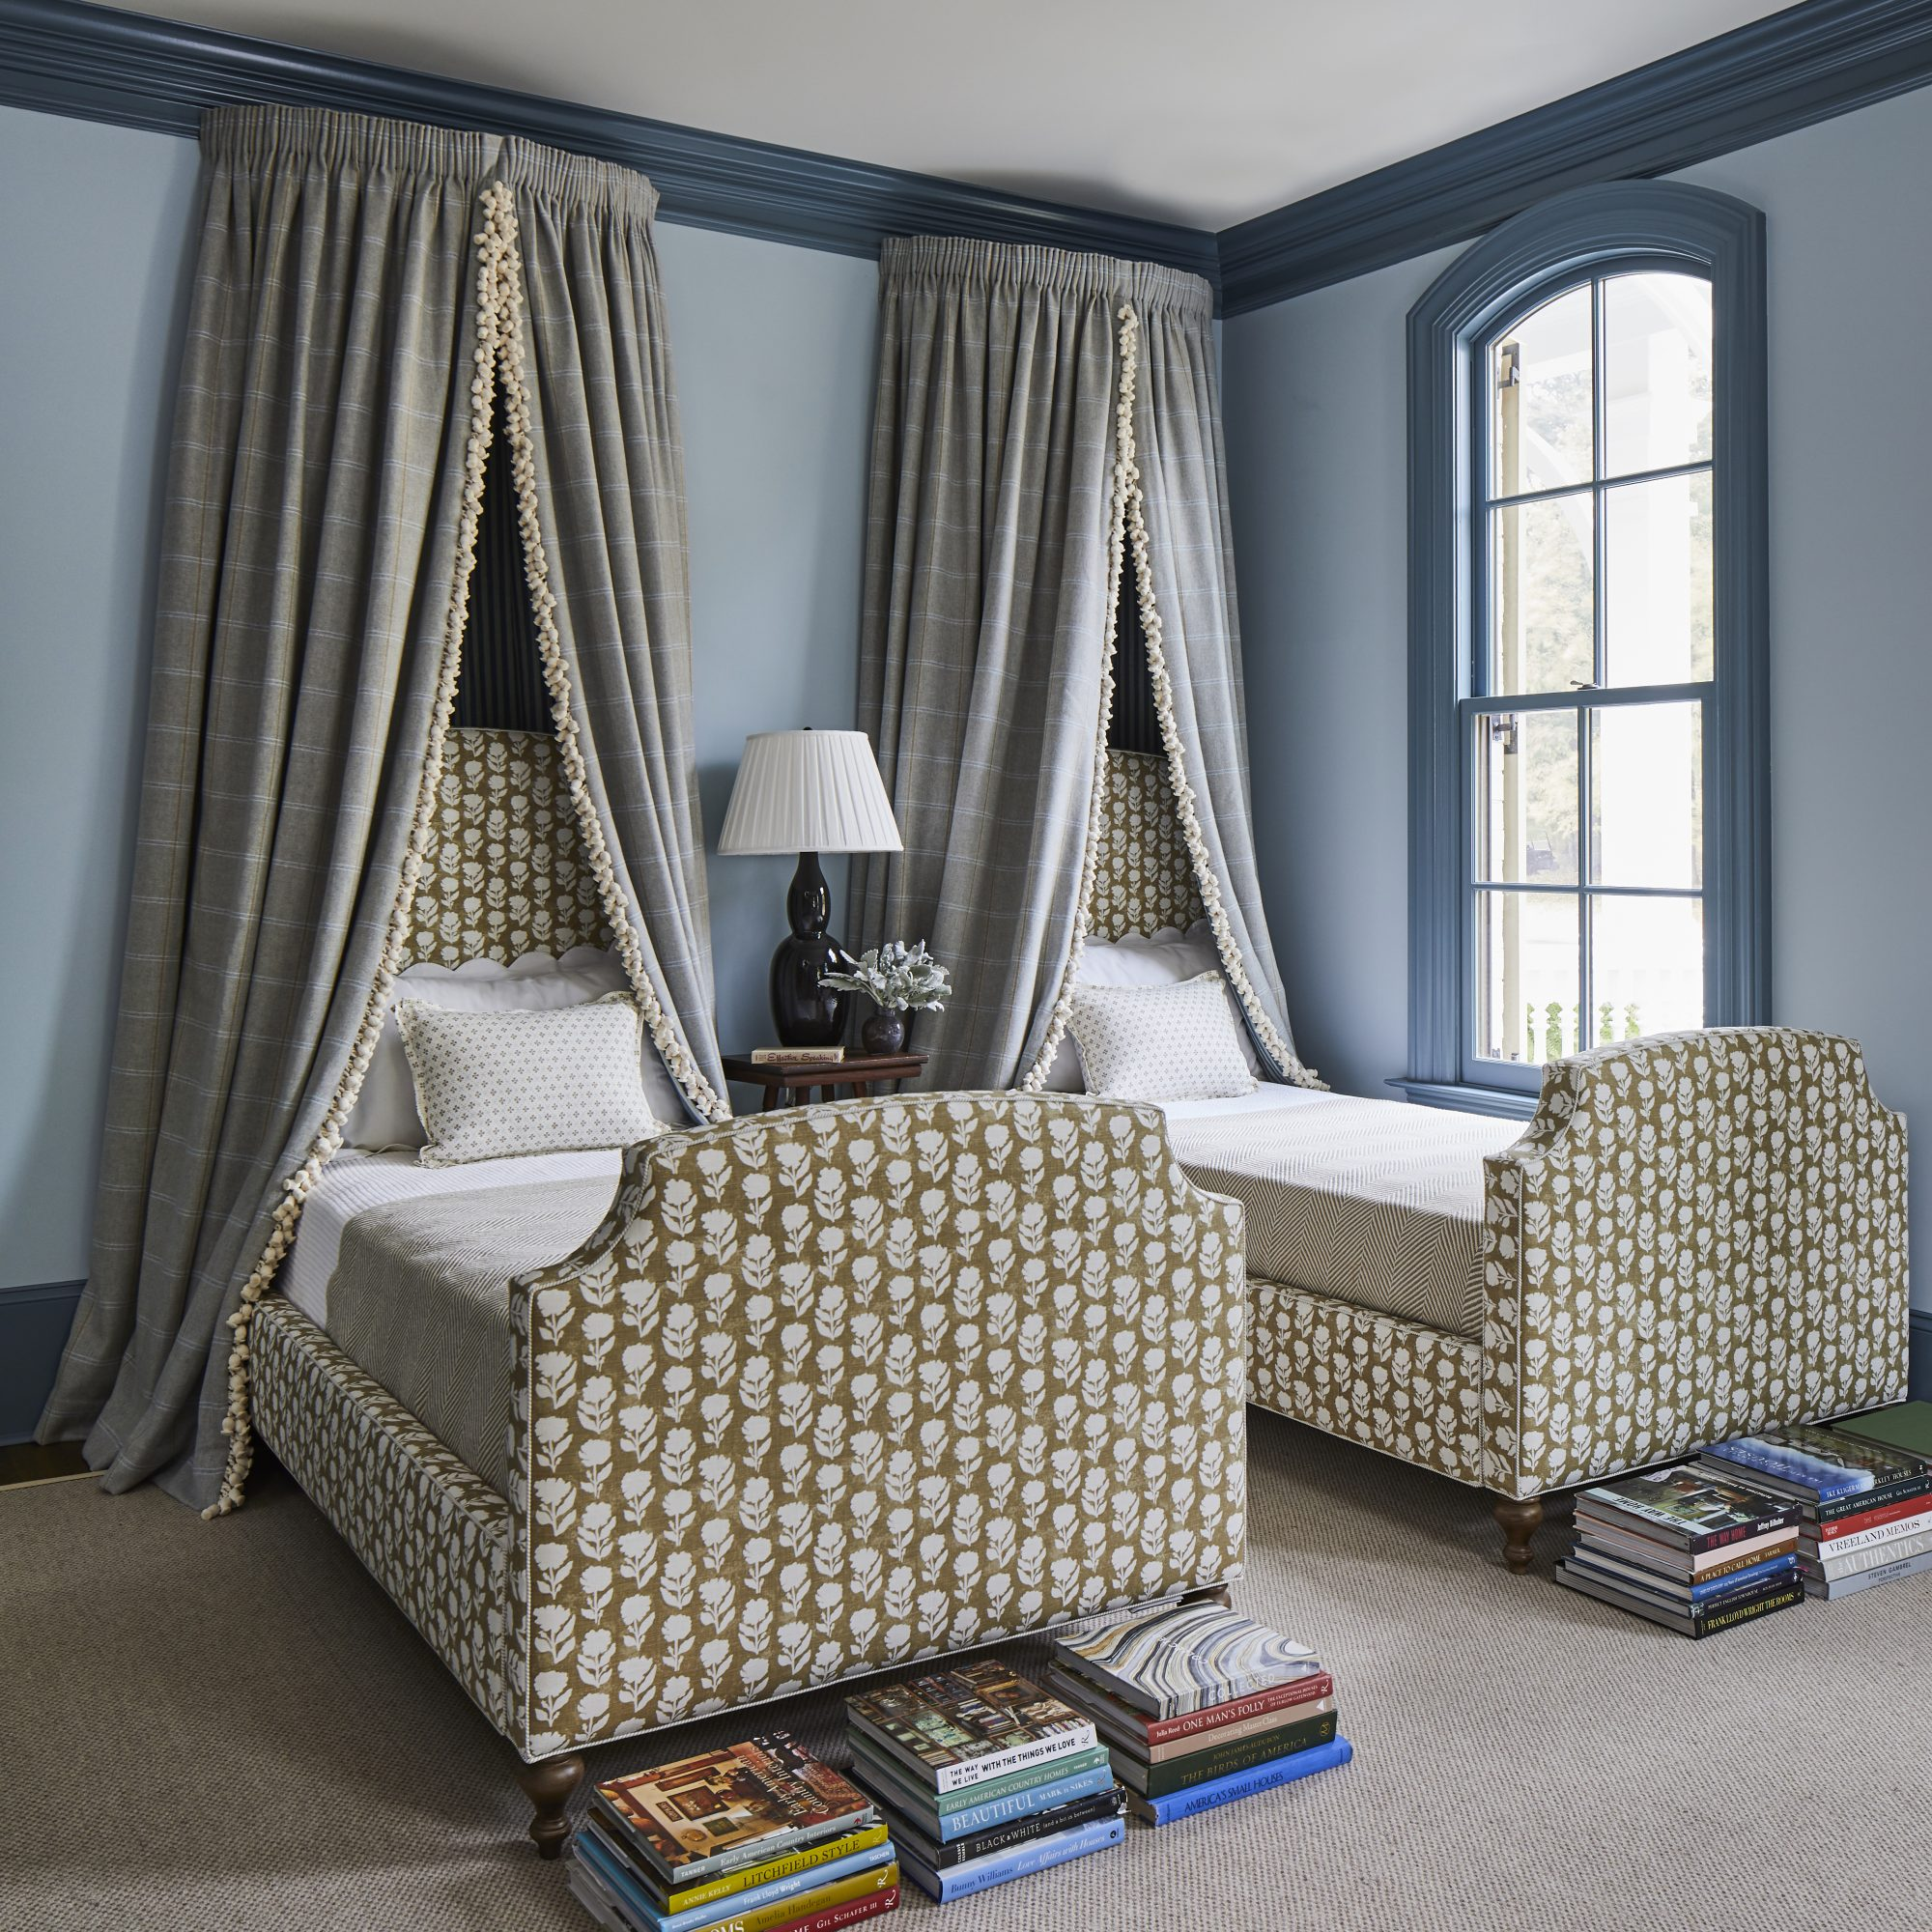 Blue Bedroom with Twin Beds